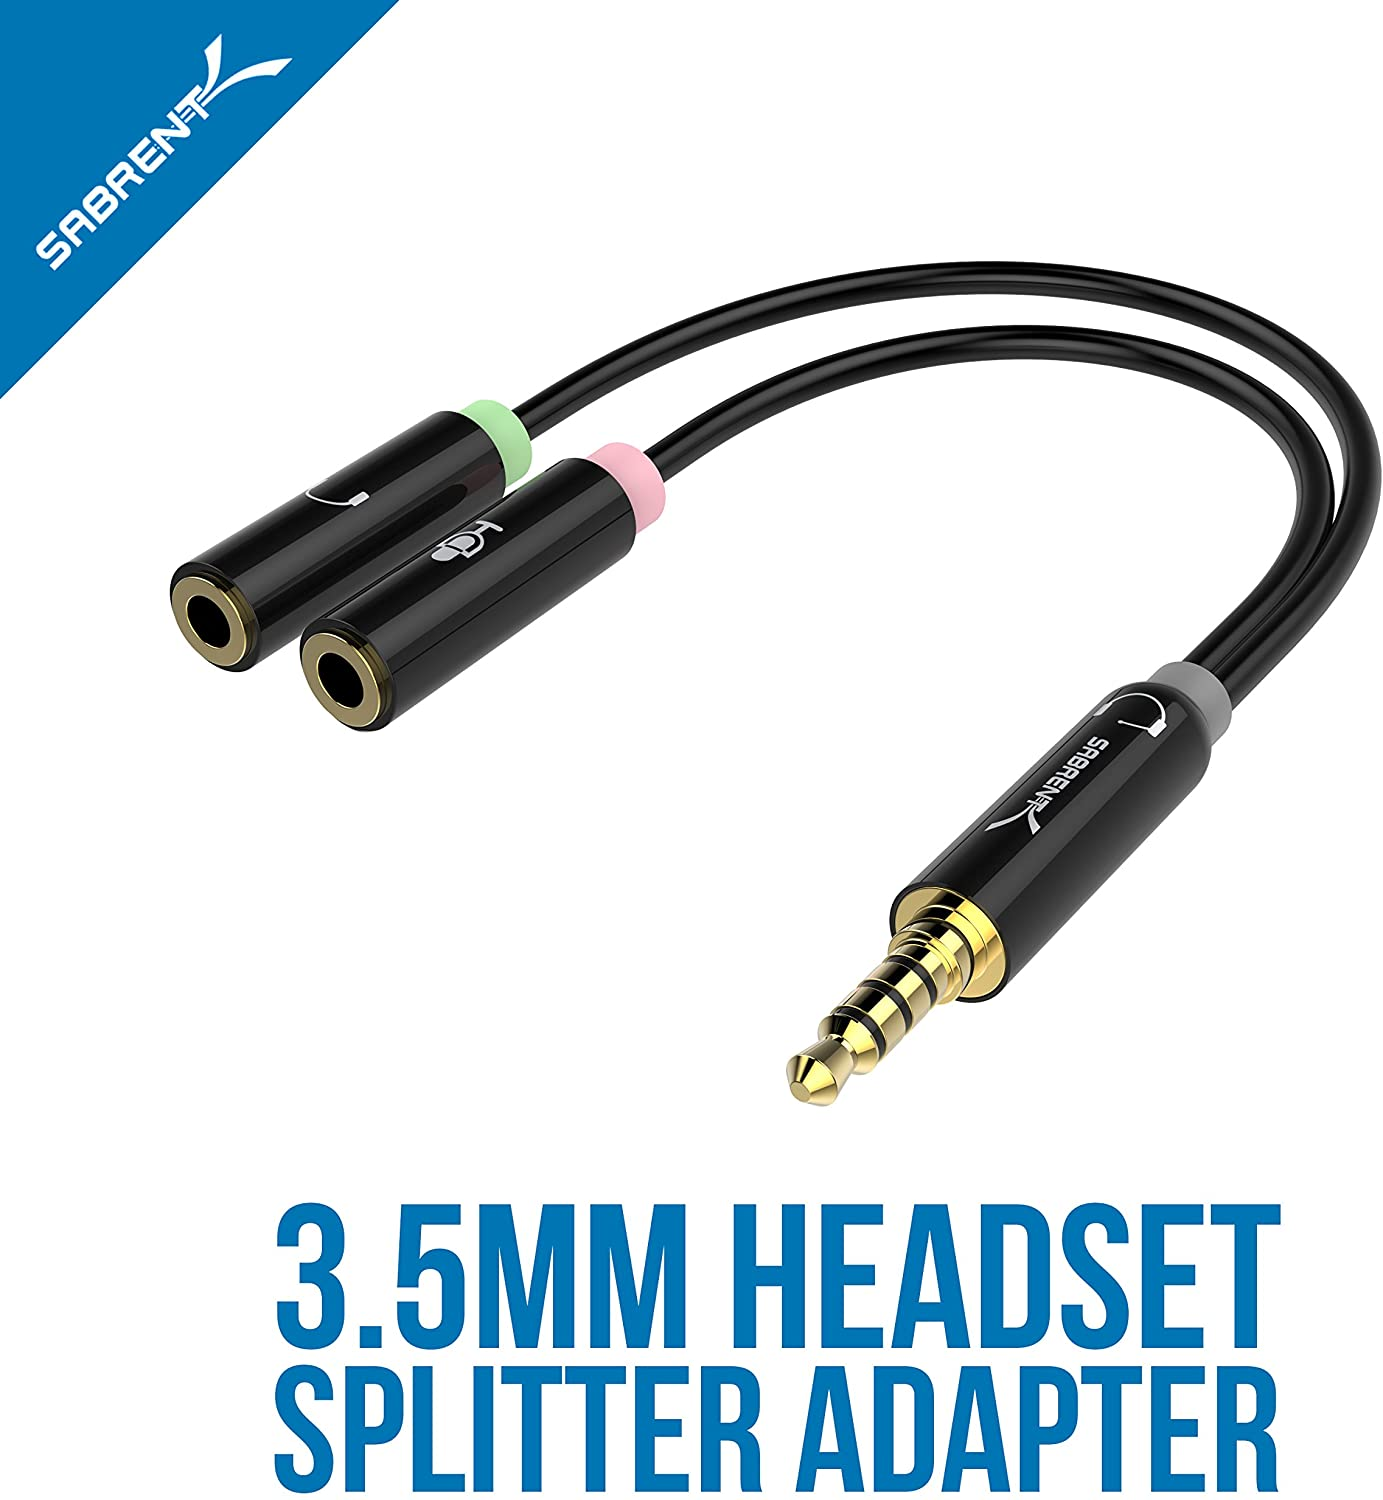 Sabrent 3.5mm Headset Splitter Adaptor Cable, Headphone/Microphone Plugs (CB-AUHM)